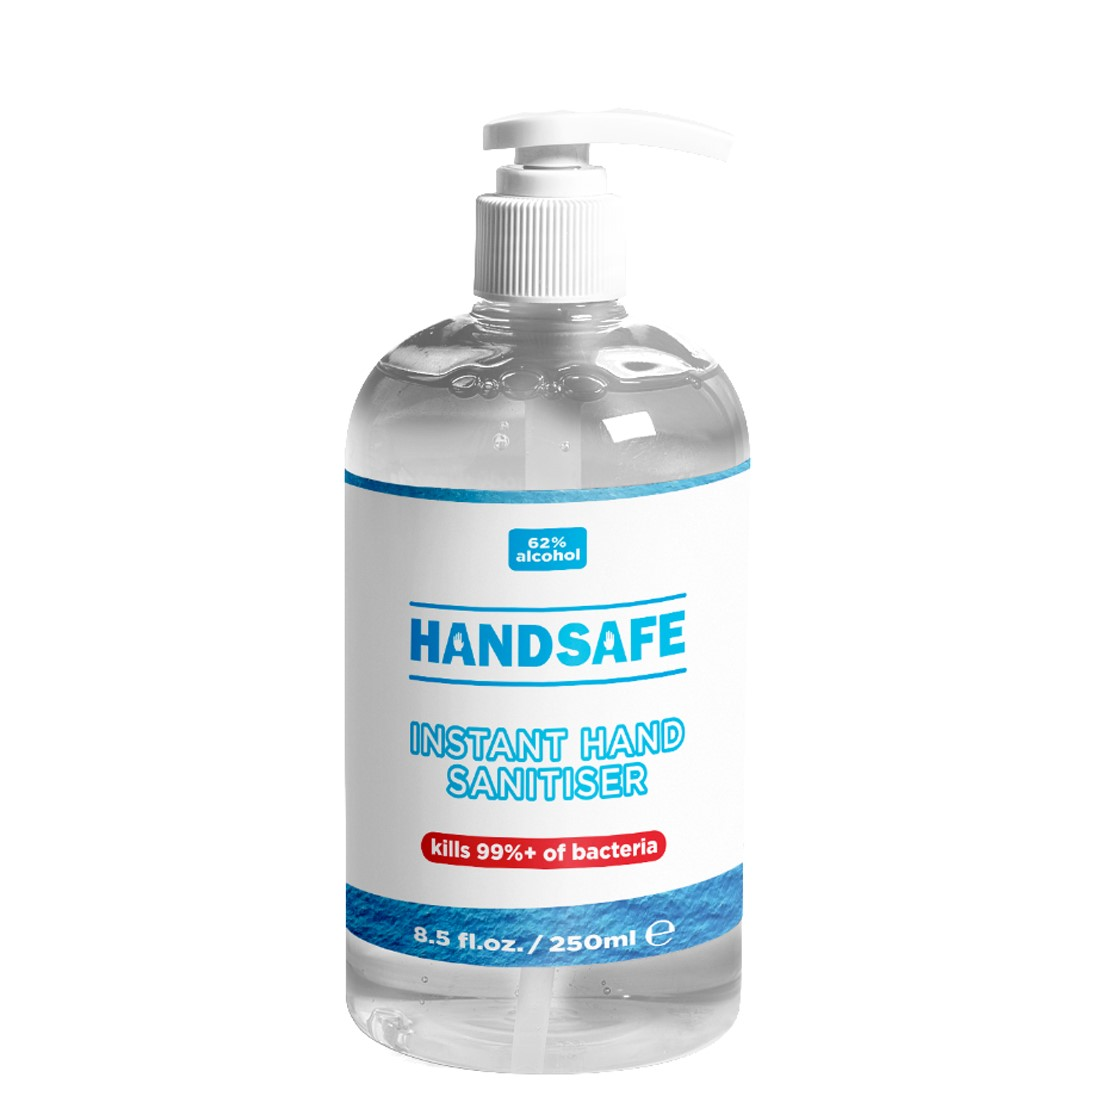 637286113212317689_hand-sanitiser-uk-62pc_250ml_web.jpg